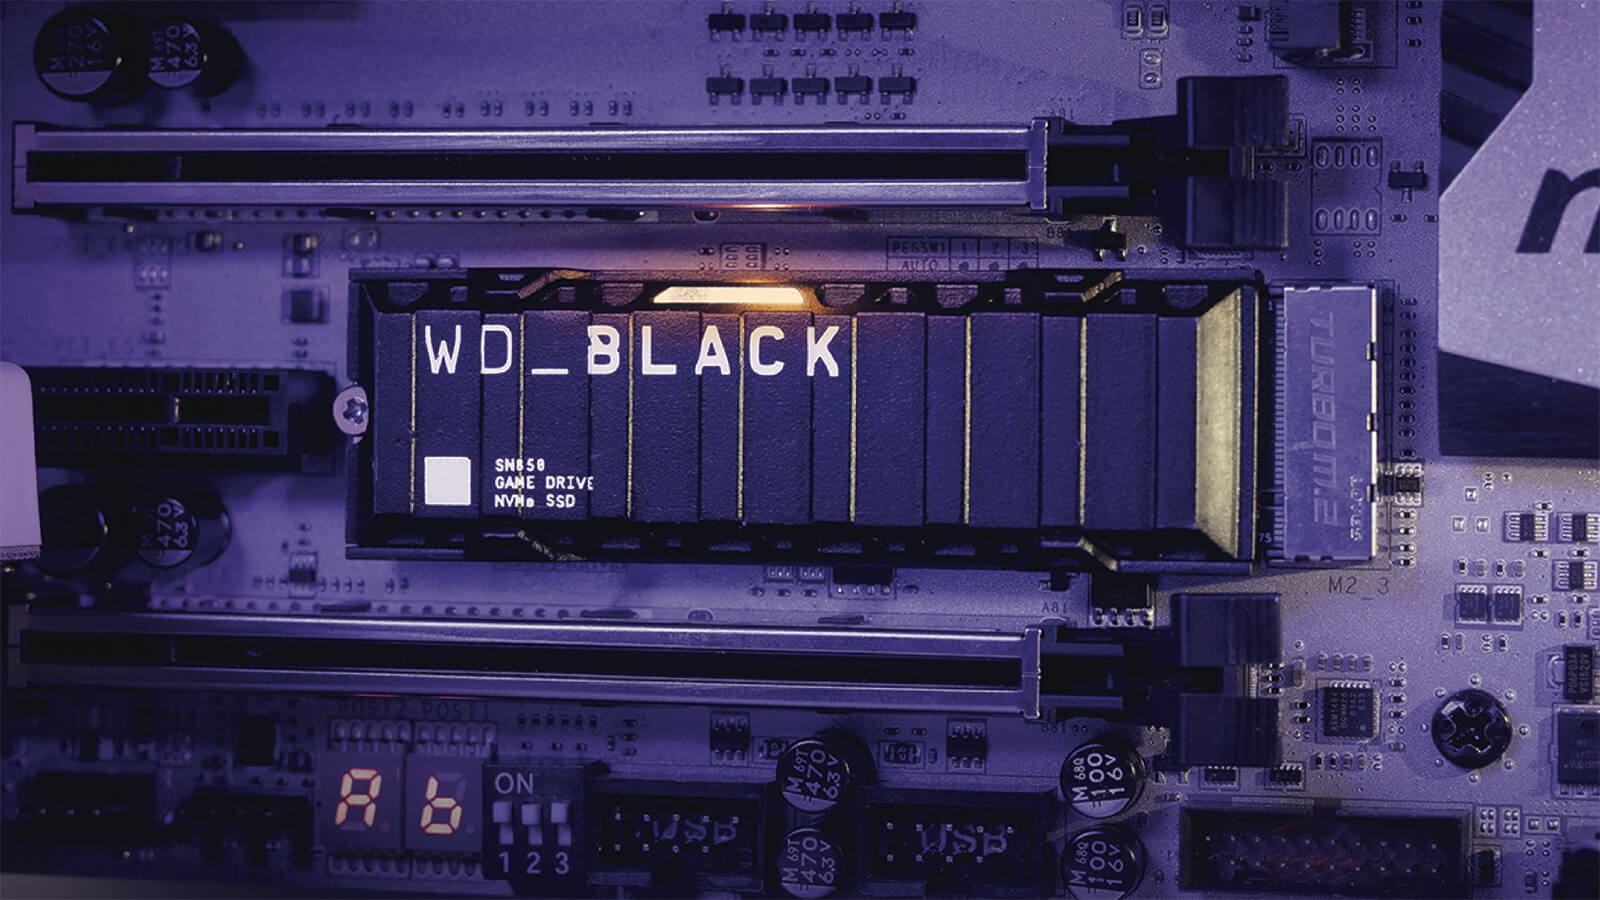 Wd Black Sn 850 Features H5